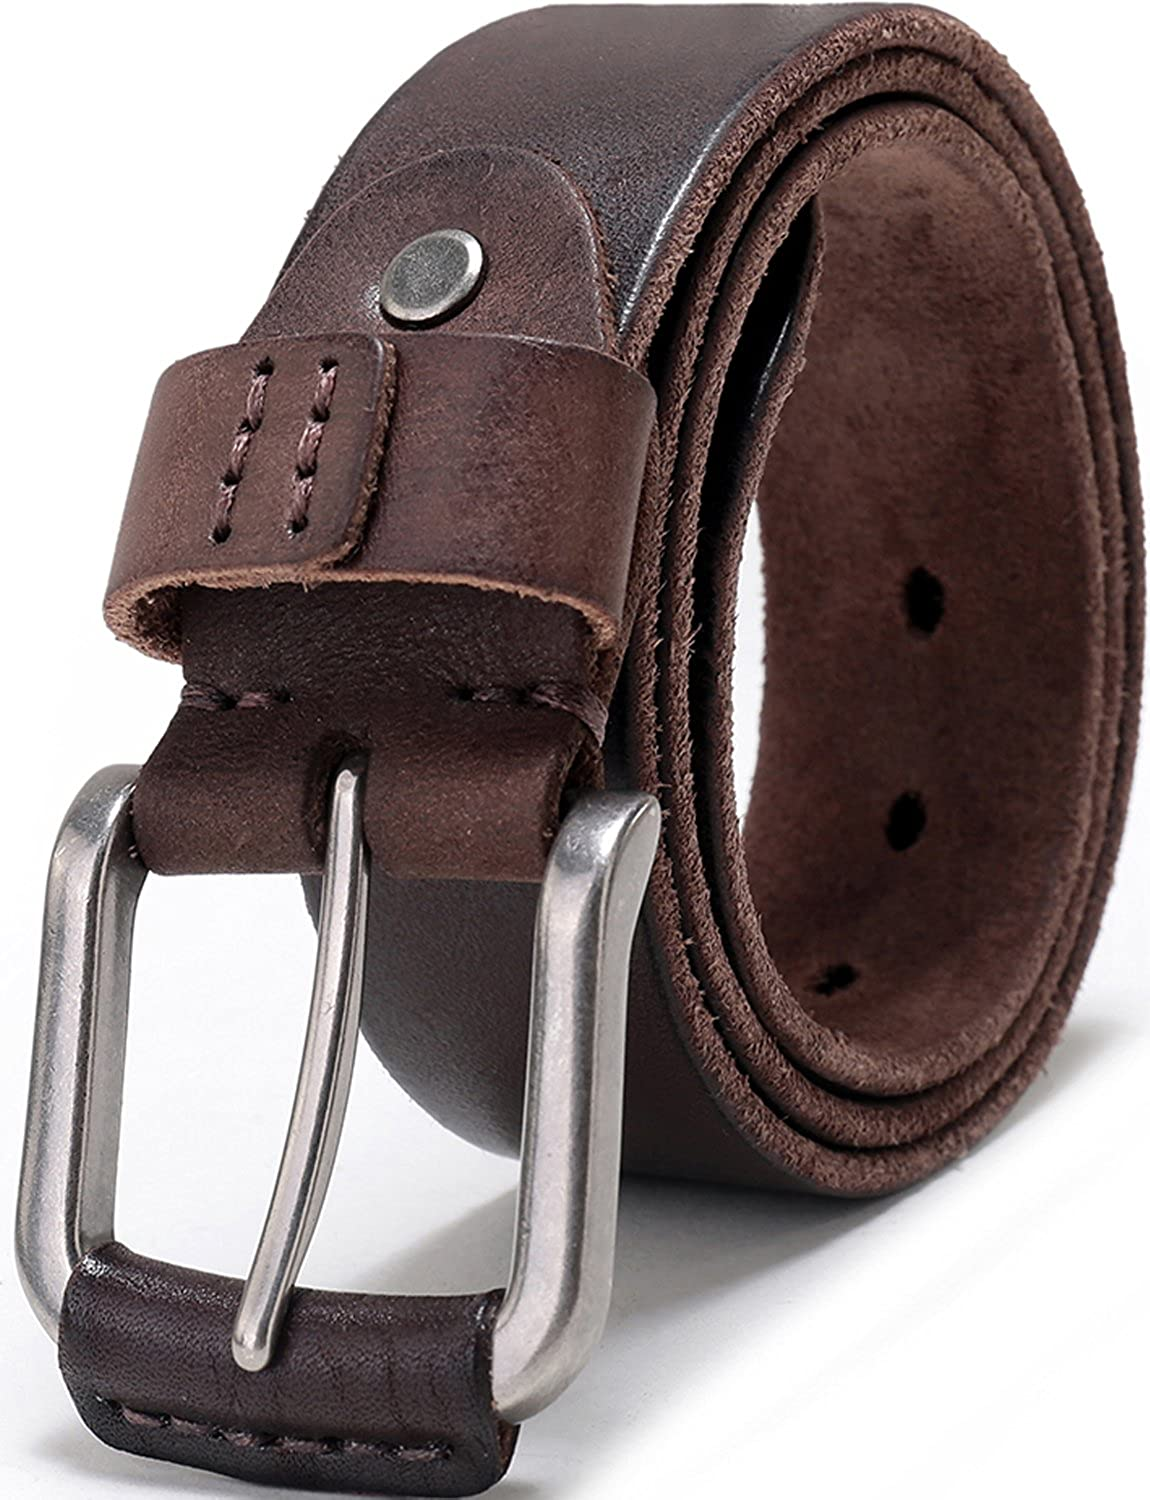 Mens Full Grain 1 1//2 Wide Leather Bridle Belt with Anti-Scratch Vintage Buckle